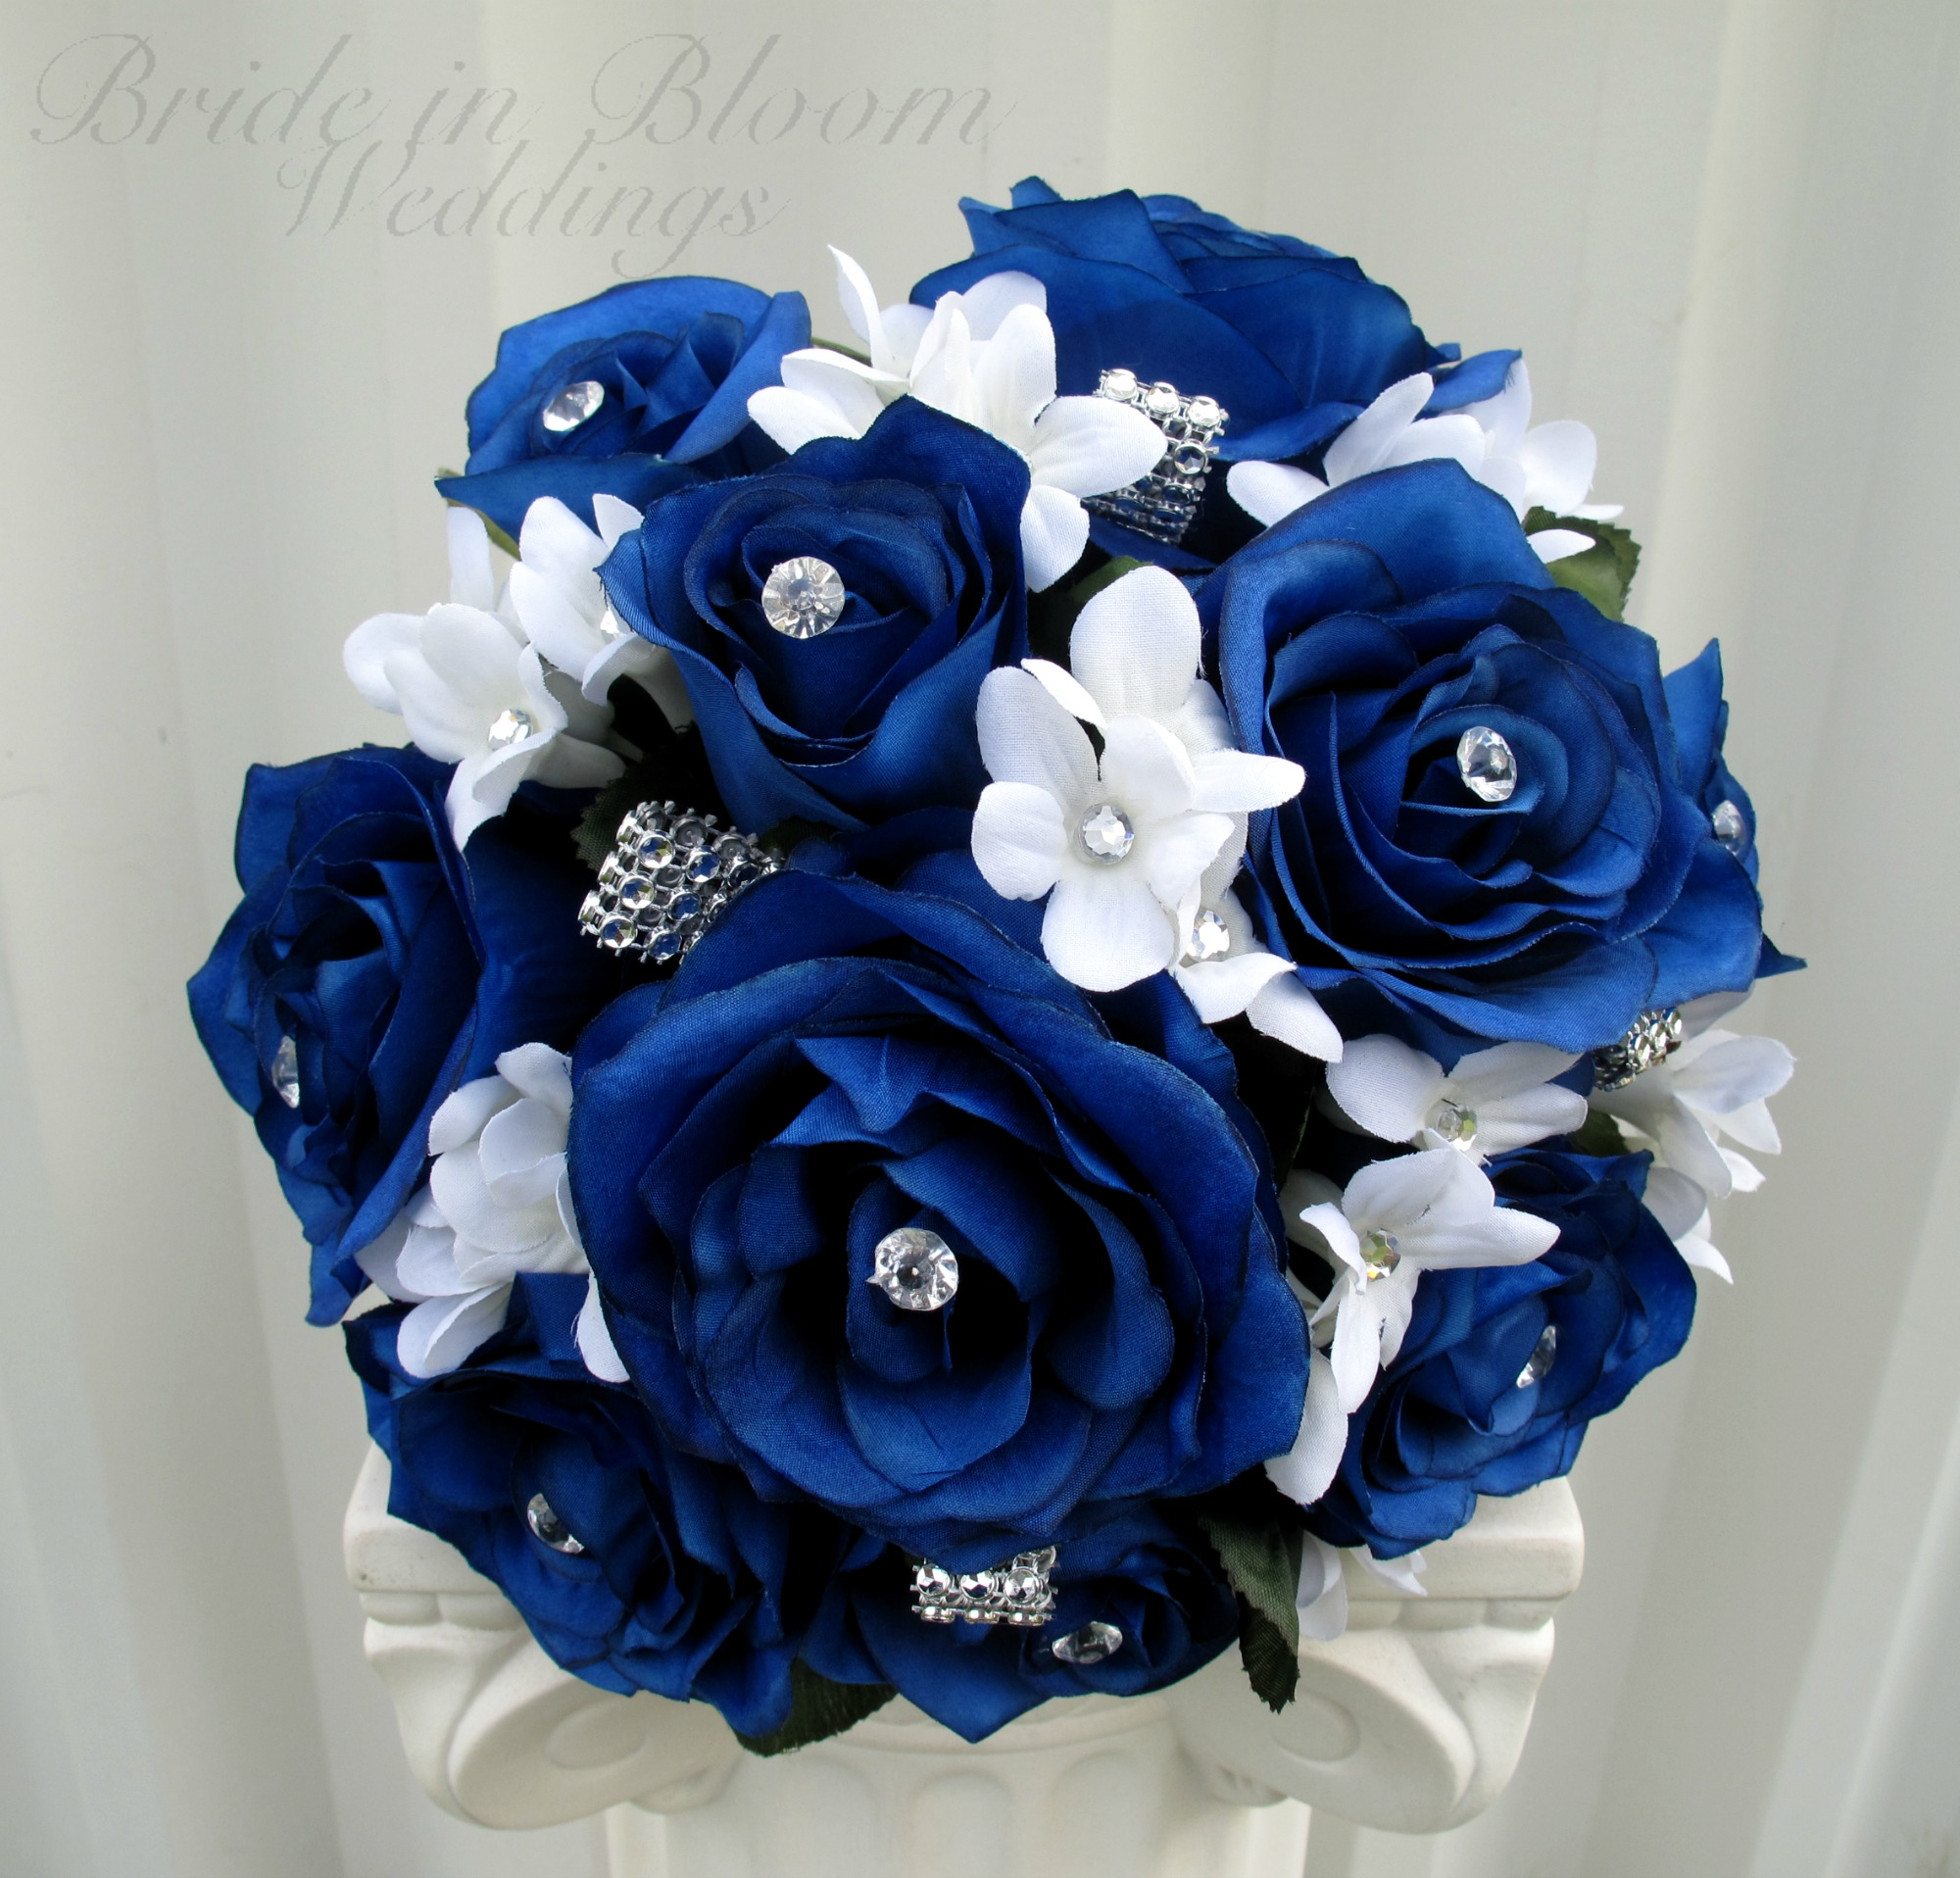 Black rose bouquet lookup beforebuying royal blue and white wedding bouquets izmirmasajfo